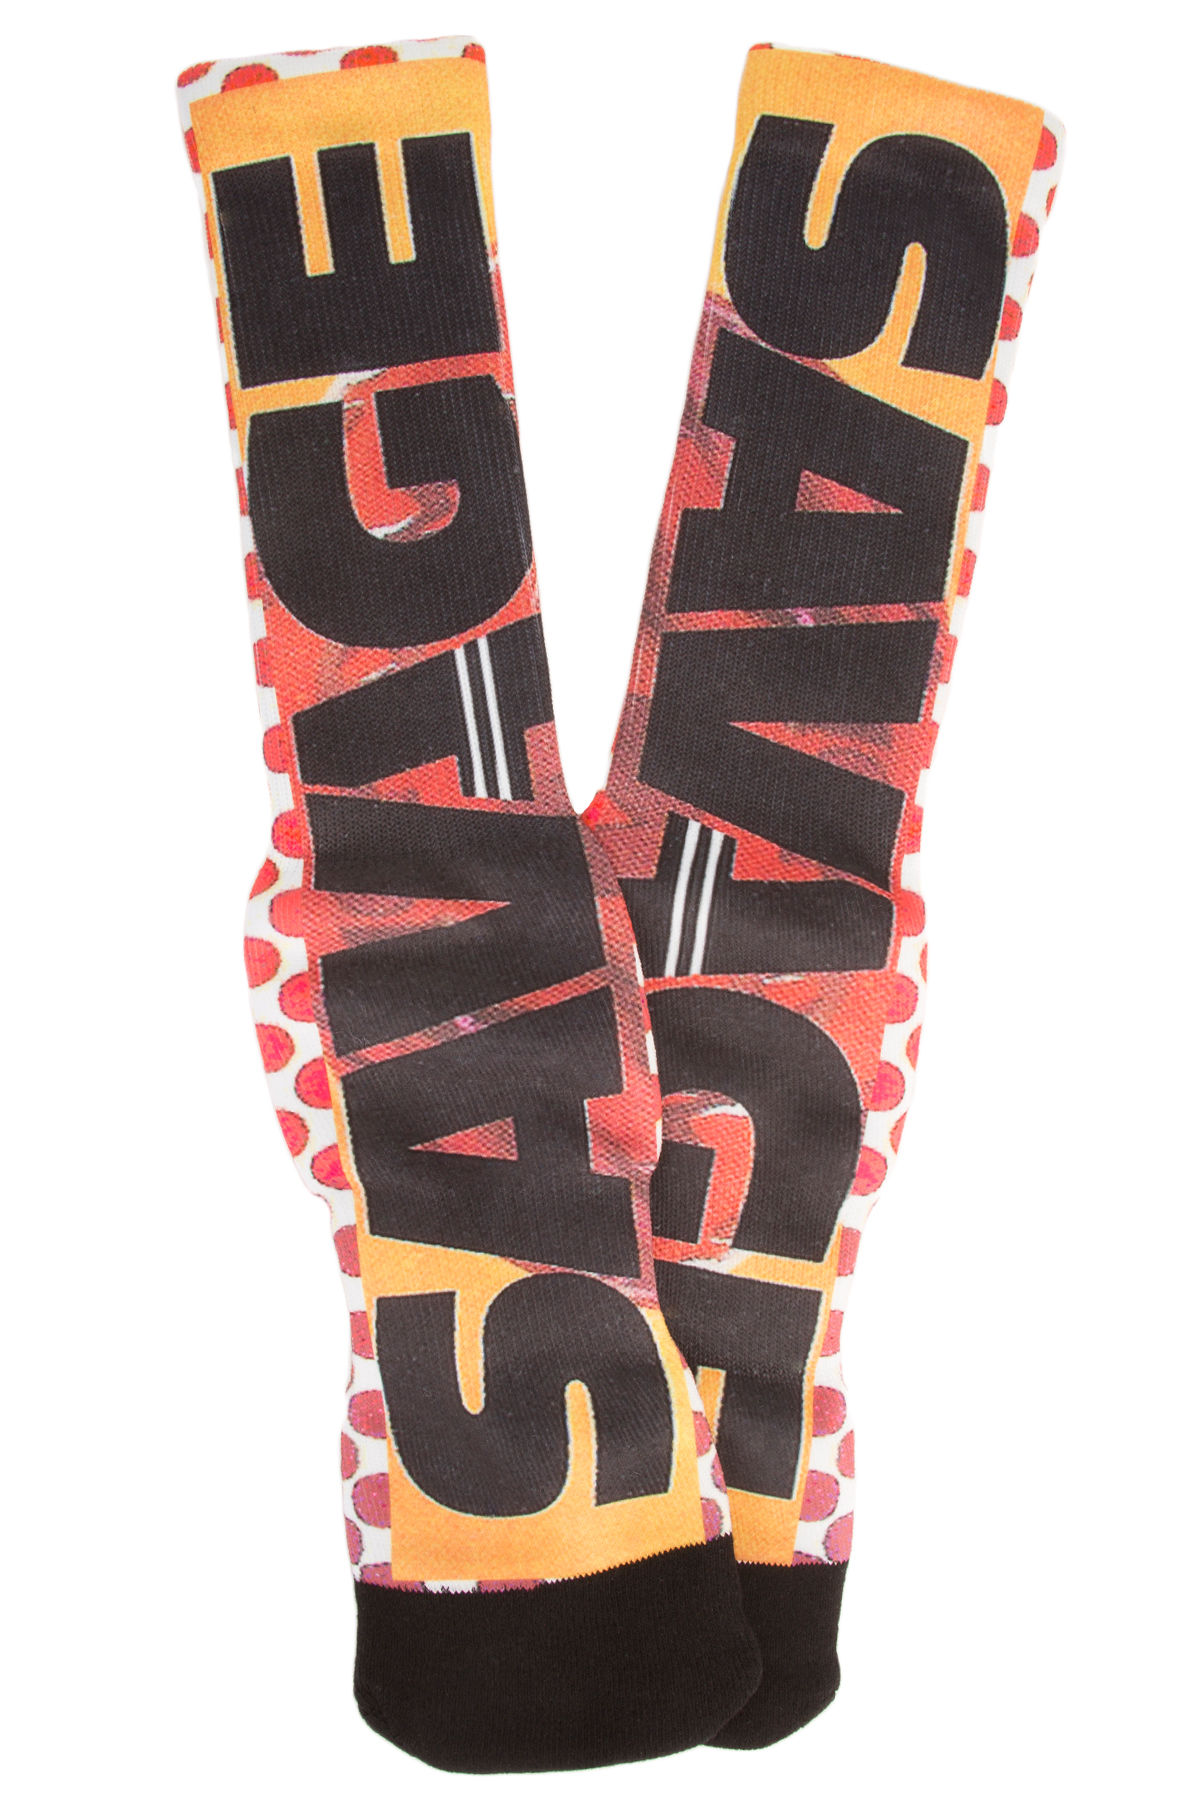 The 90s Savage Socks in Multiple Colors